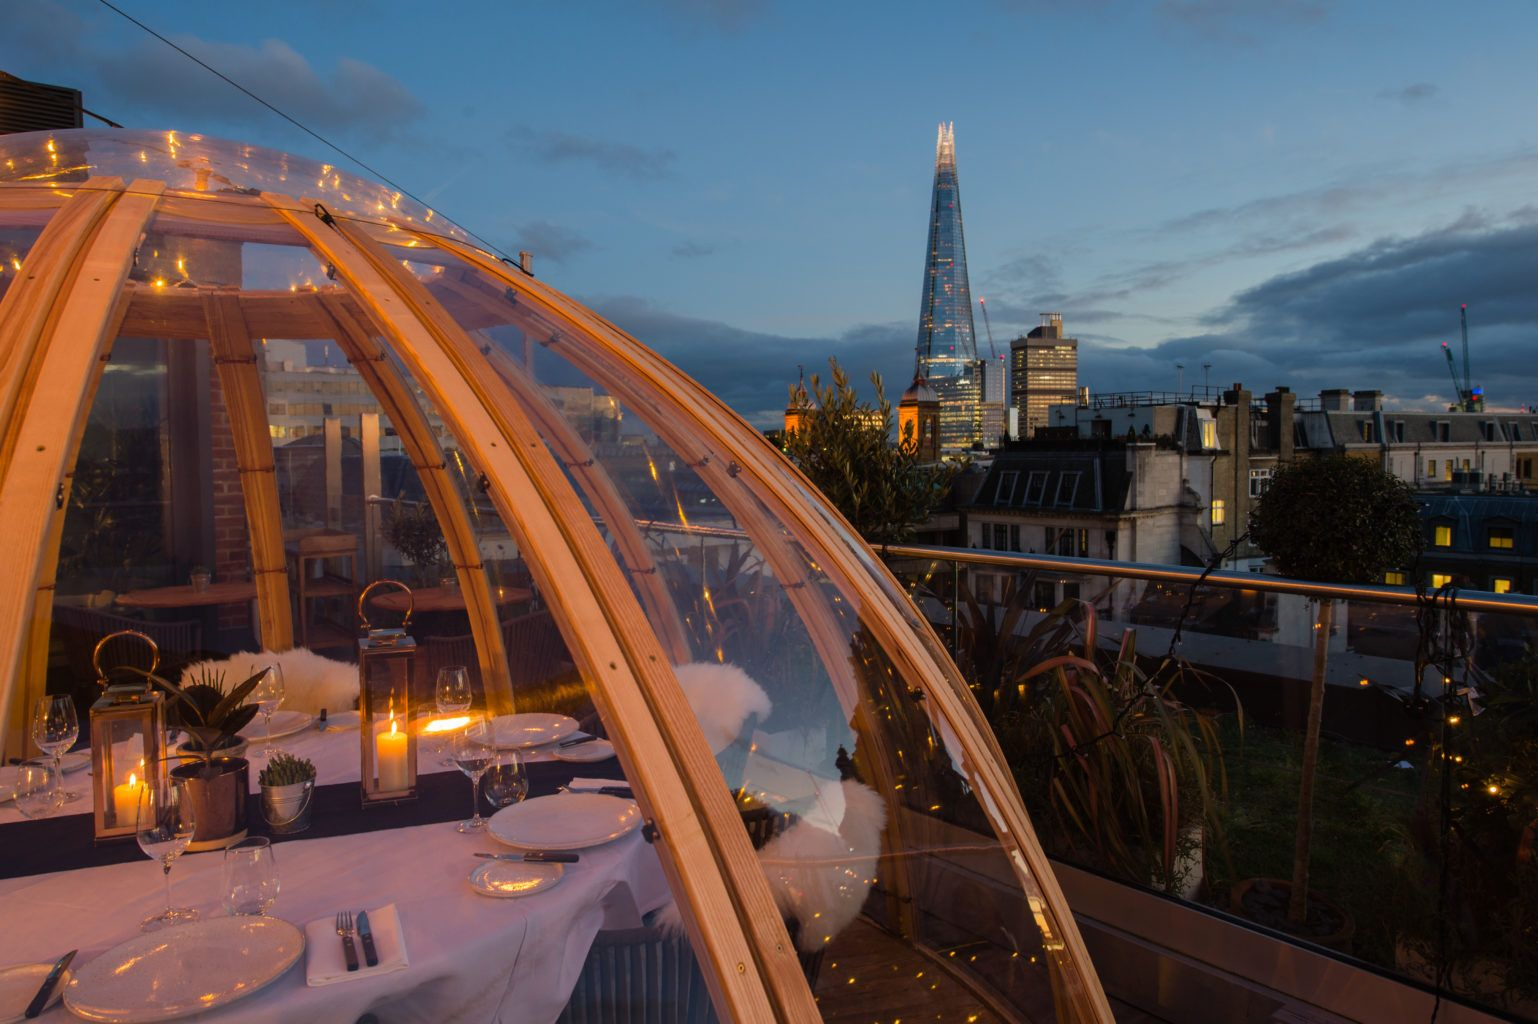 Travel Inspiration: 5 Spots In London for Design Lovers